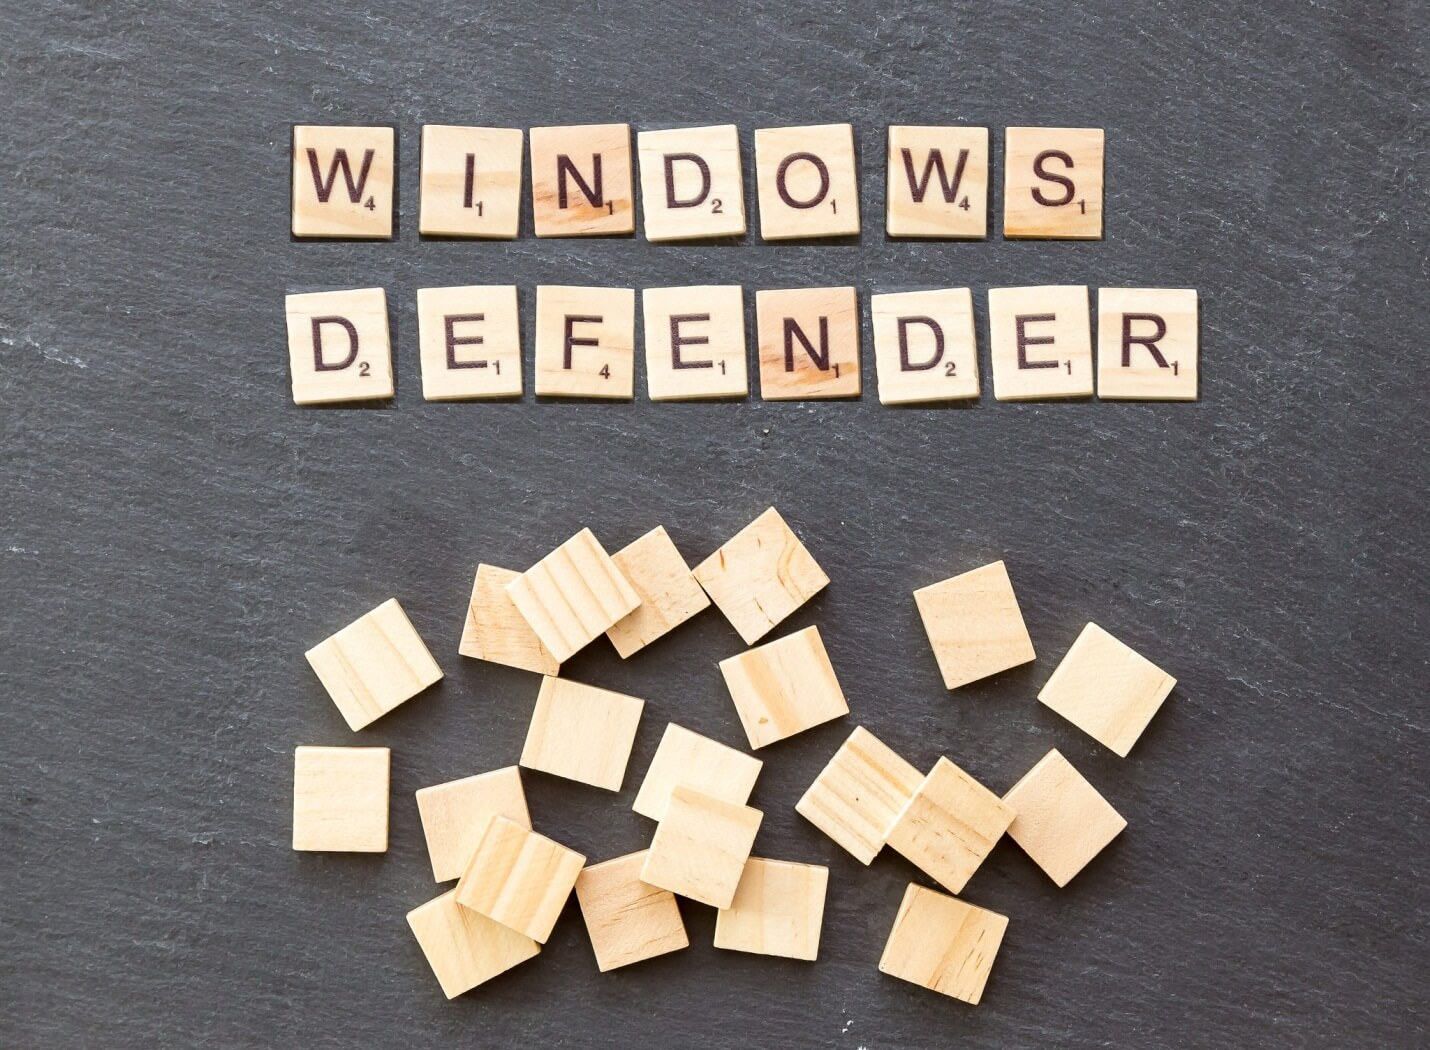 Windows Defender